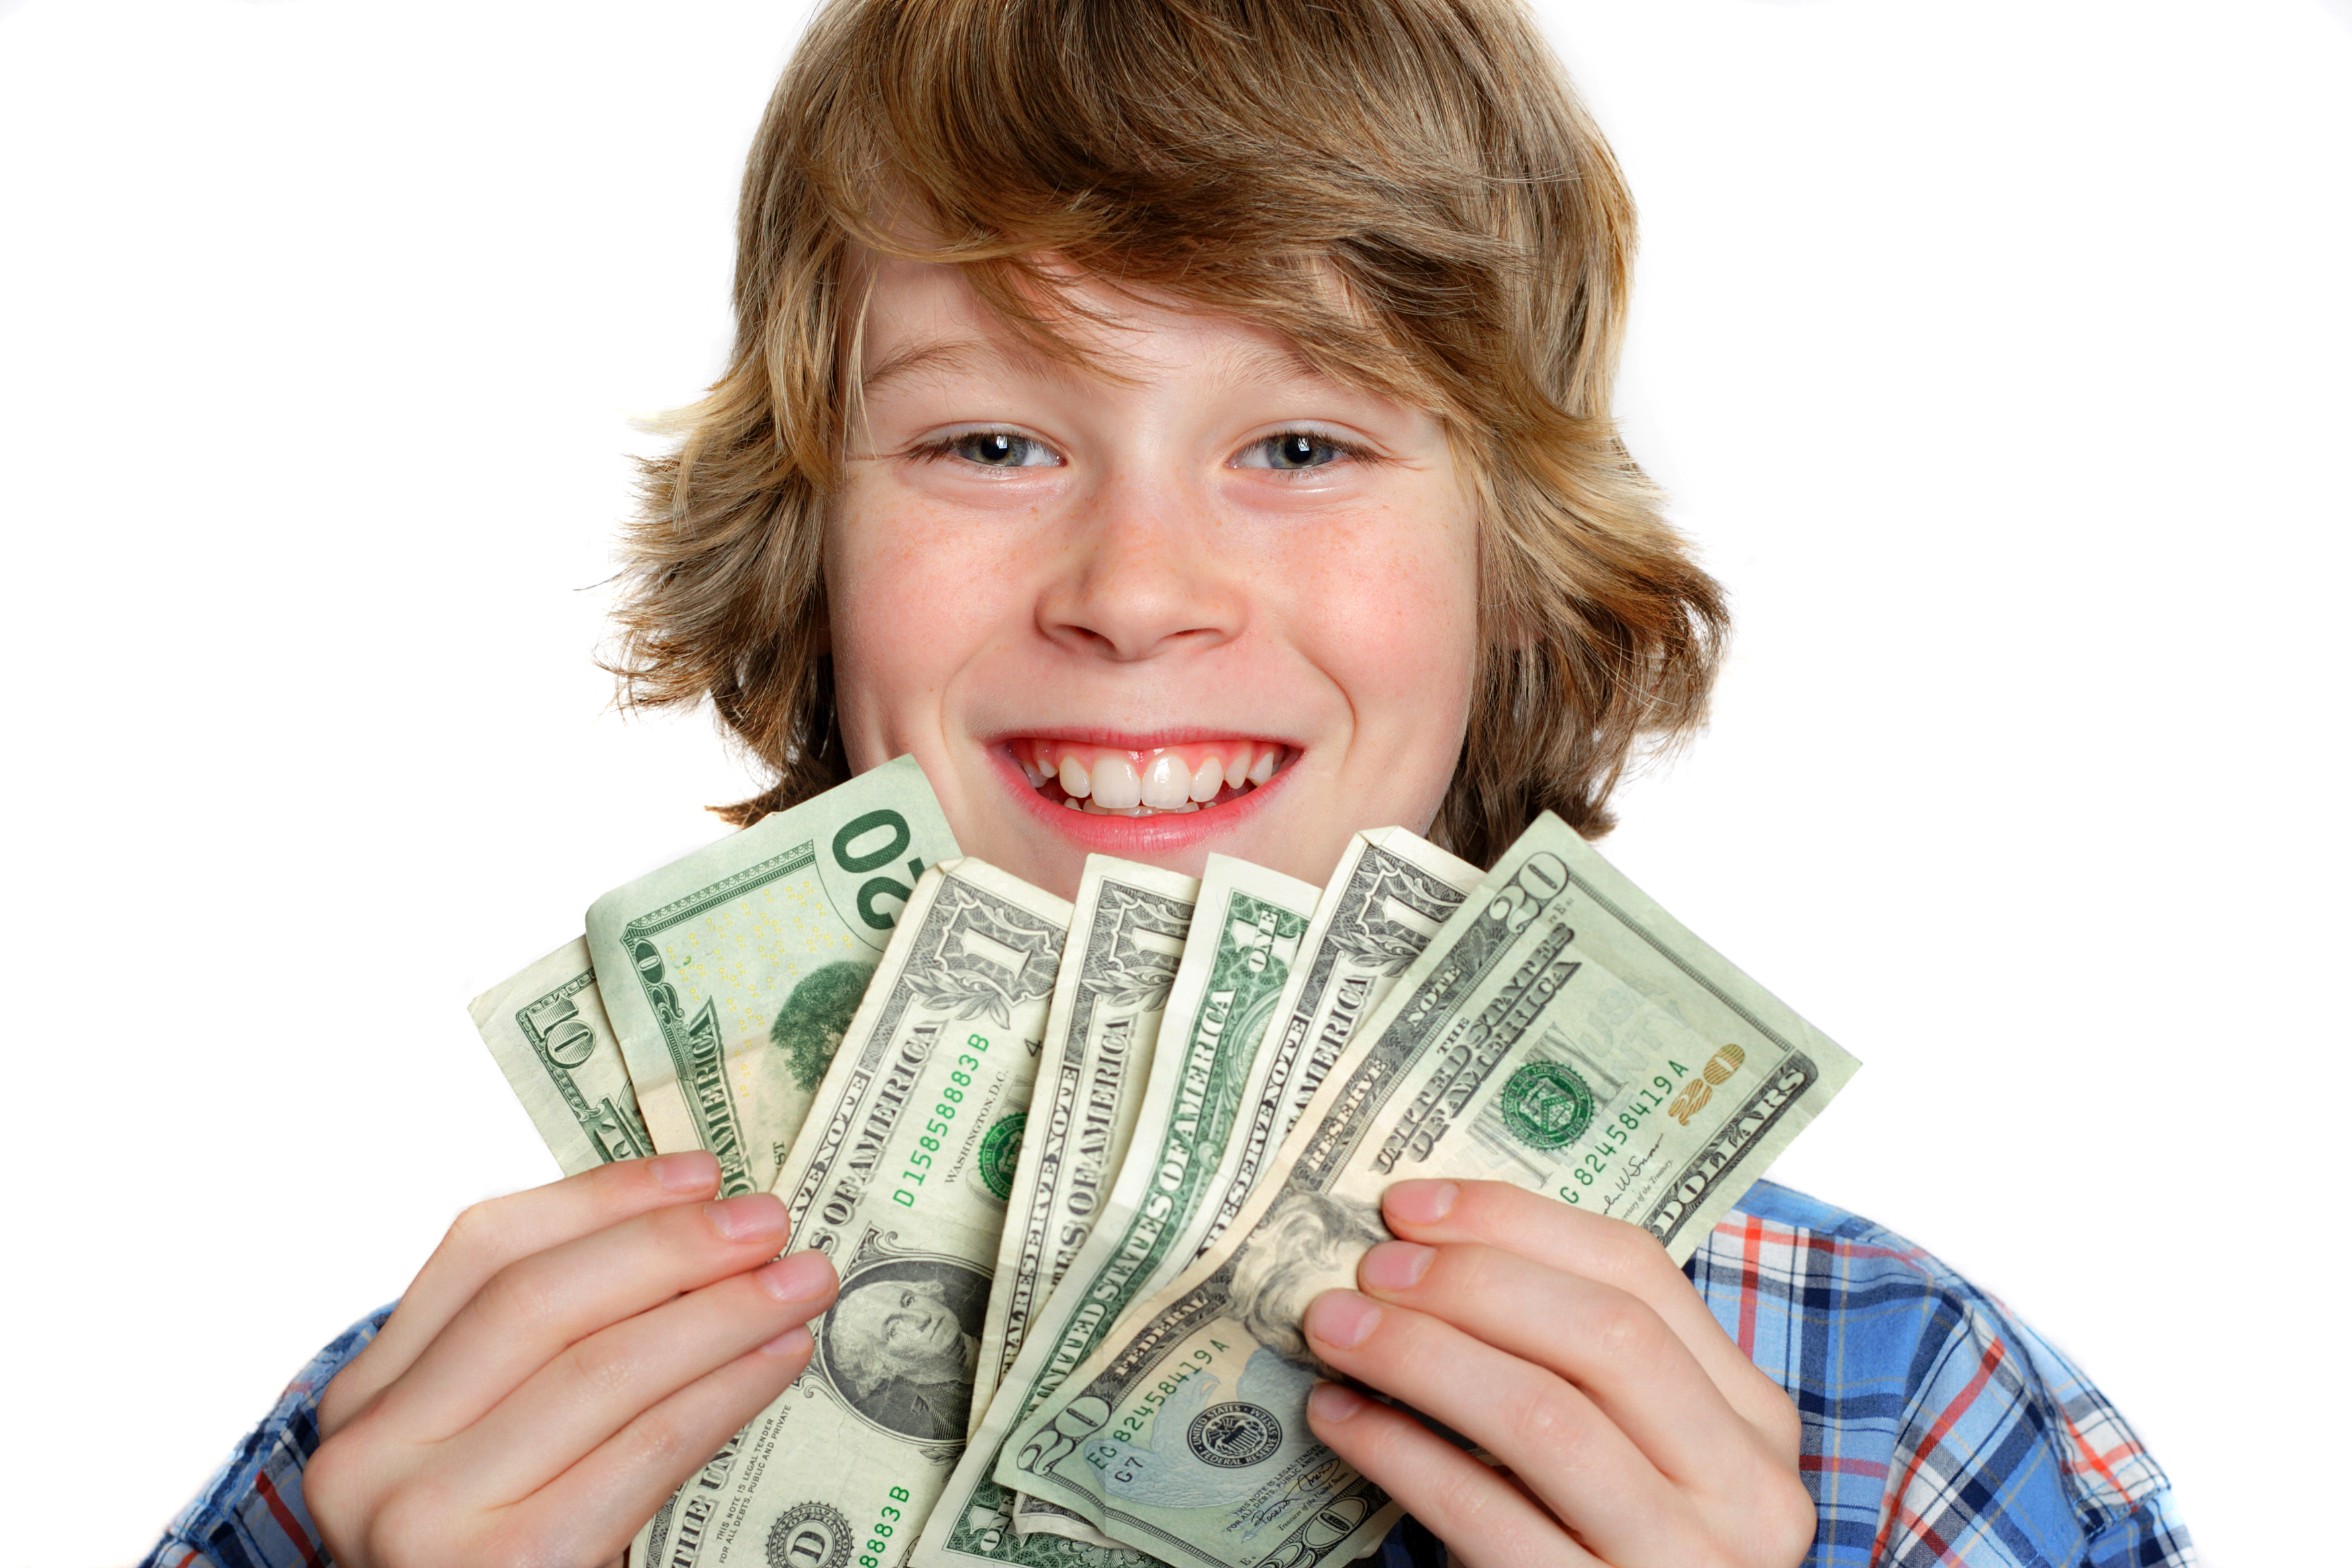 New Ways For Kids To Make Money